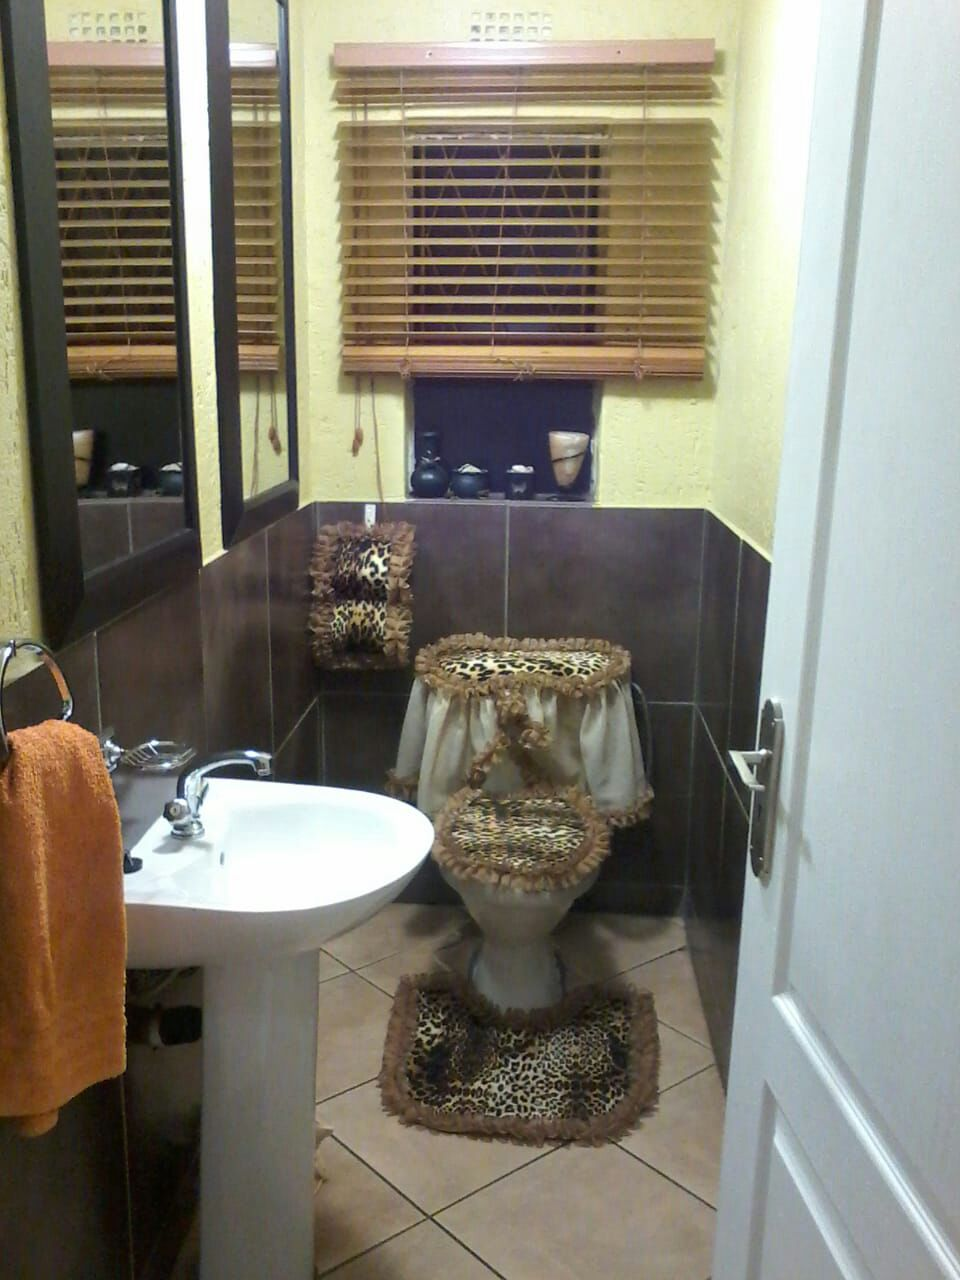 Toilet Covers and sets